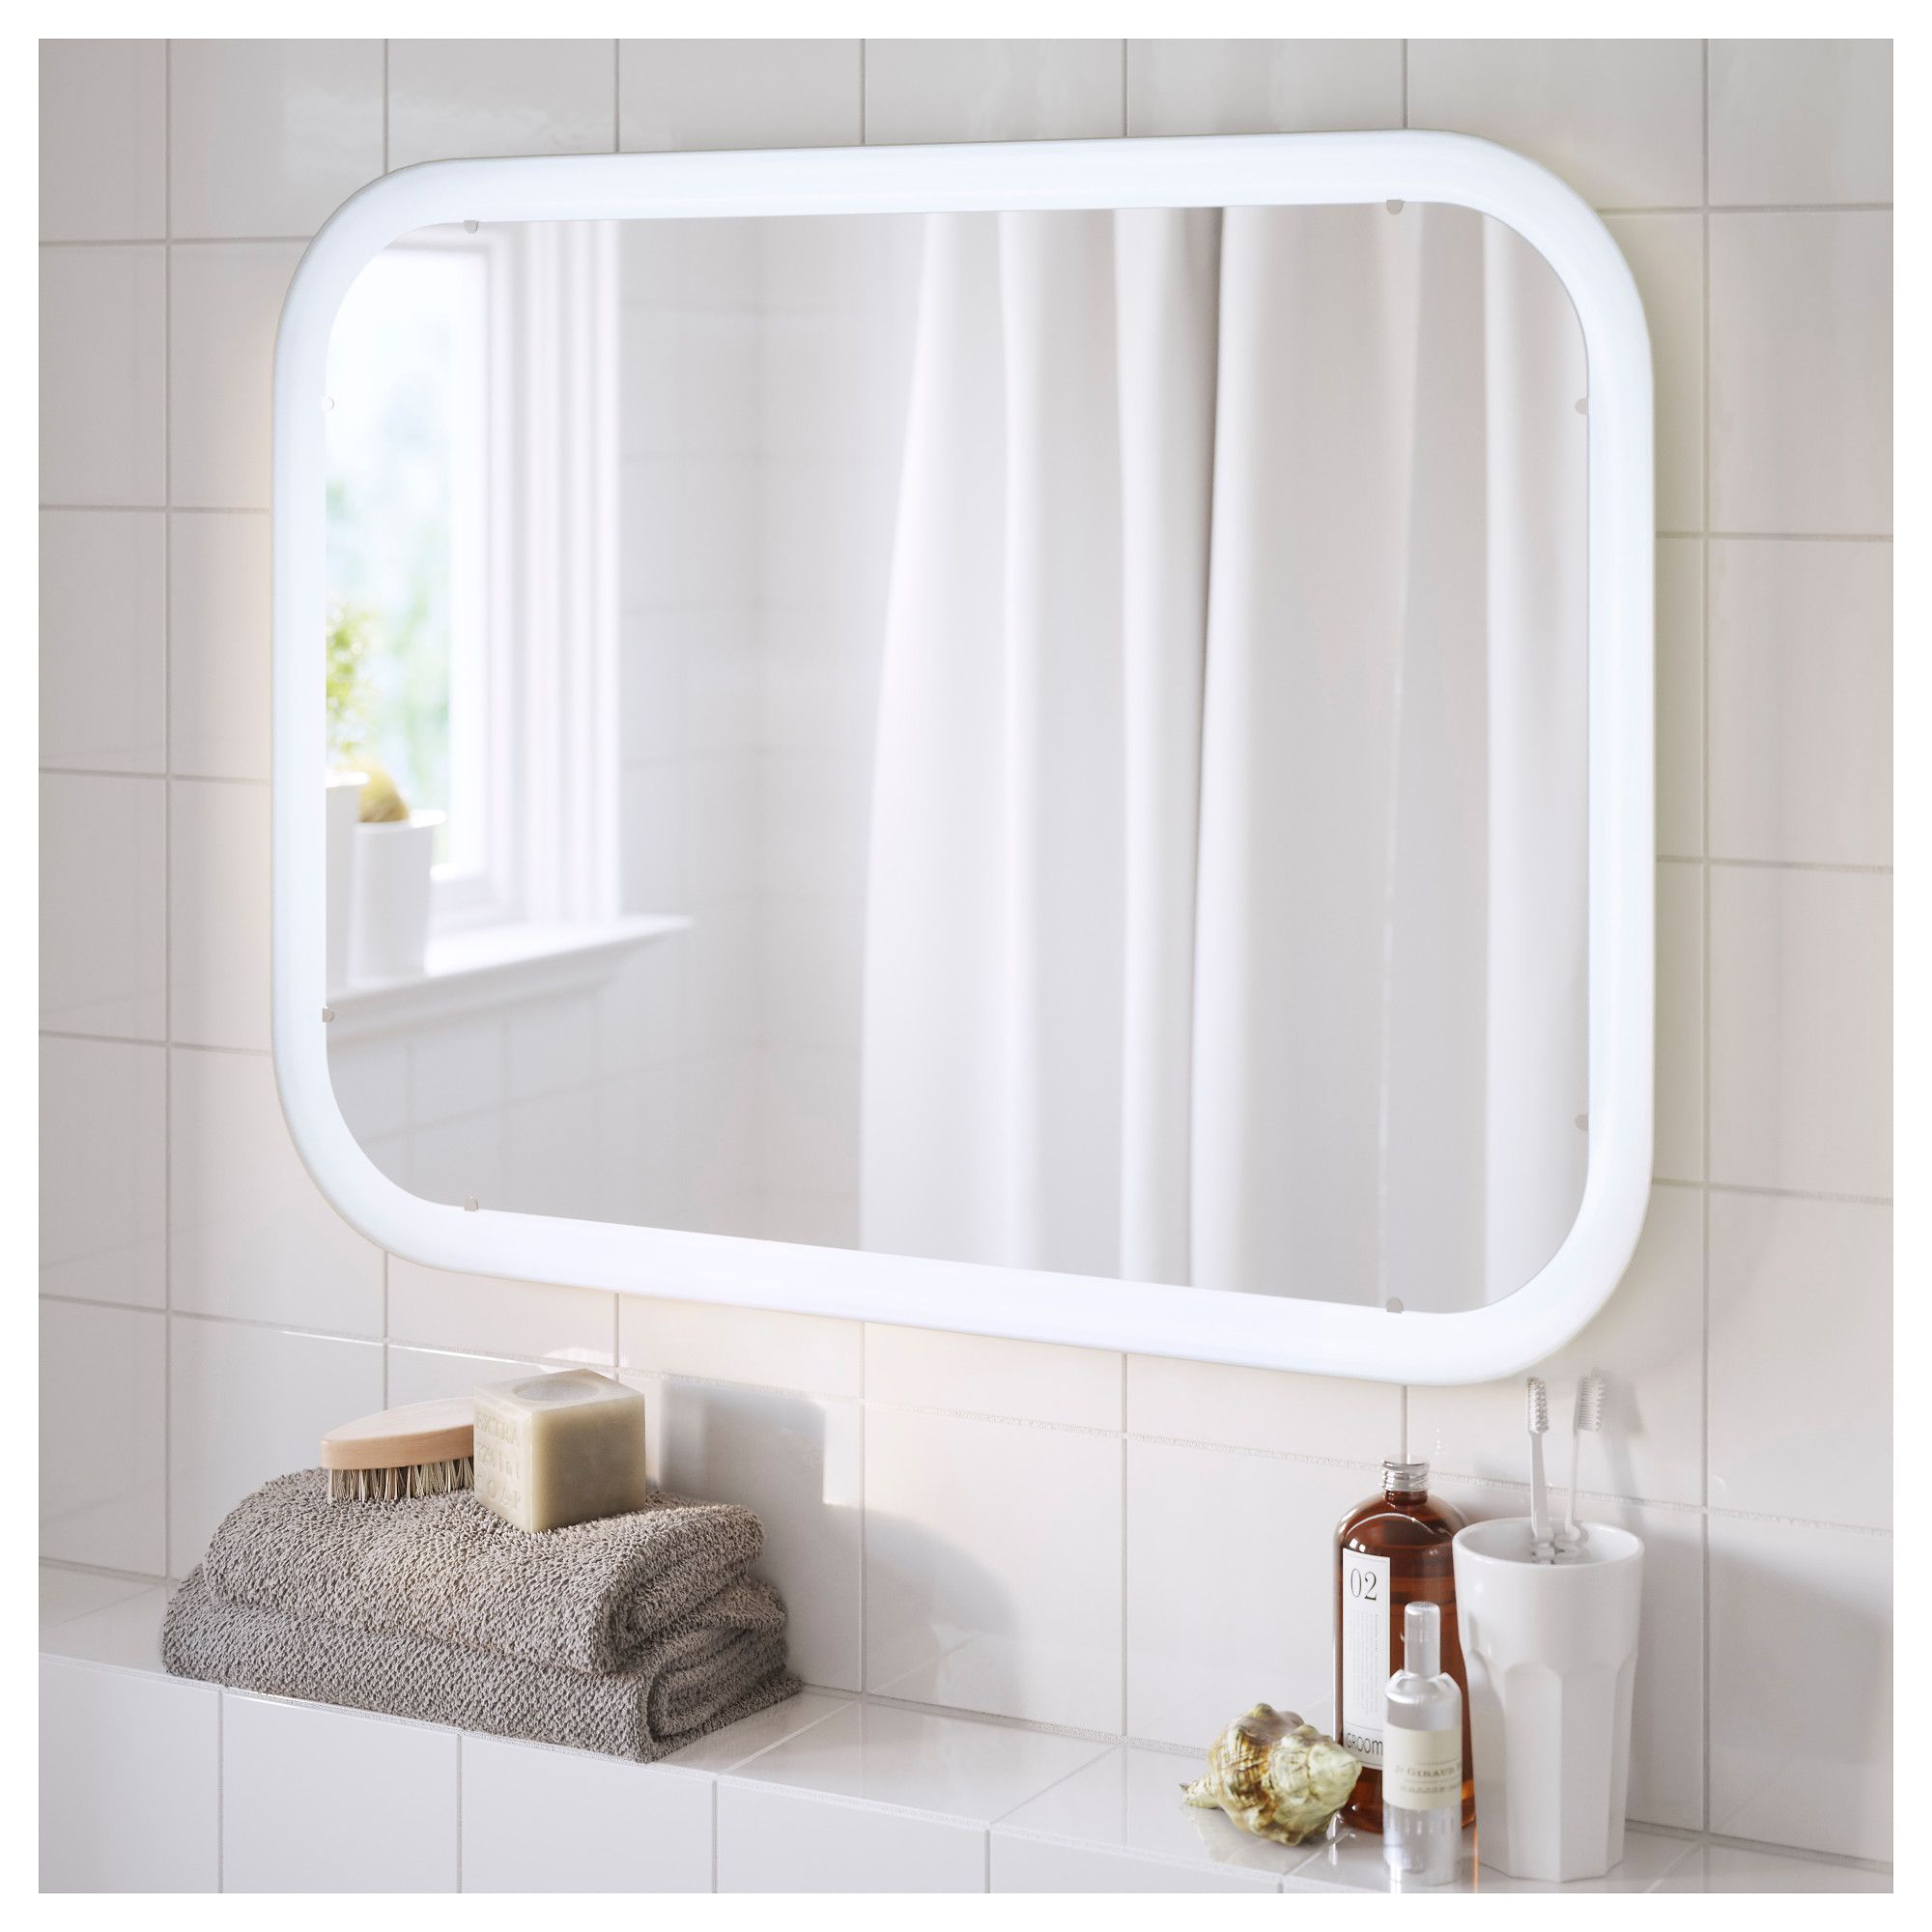 Storjorm Mirror With Built In Light White 31 1 2x23 5 8 80x60